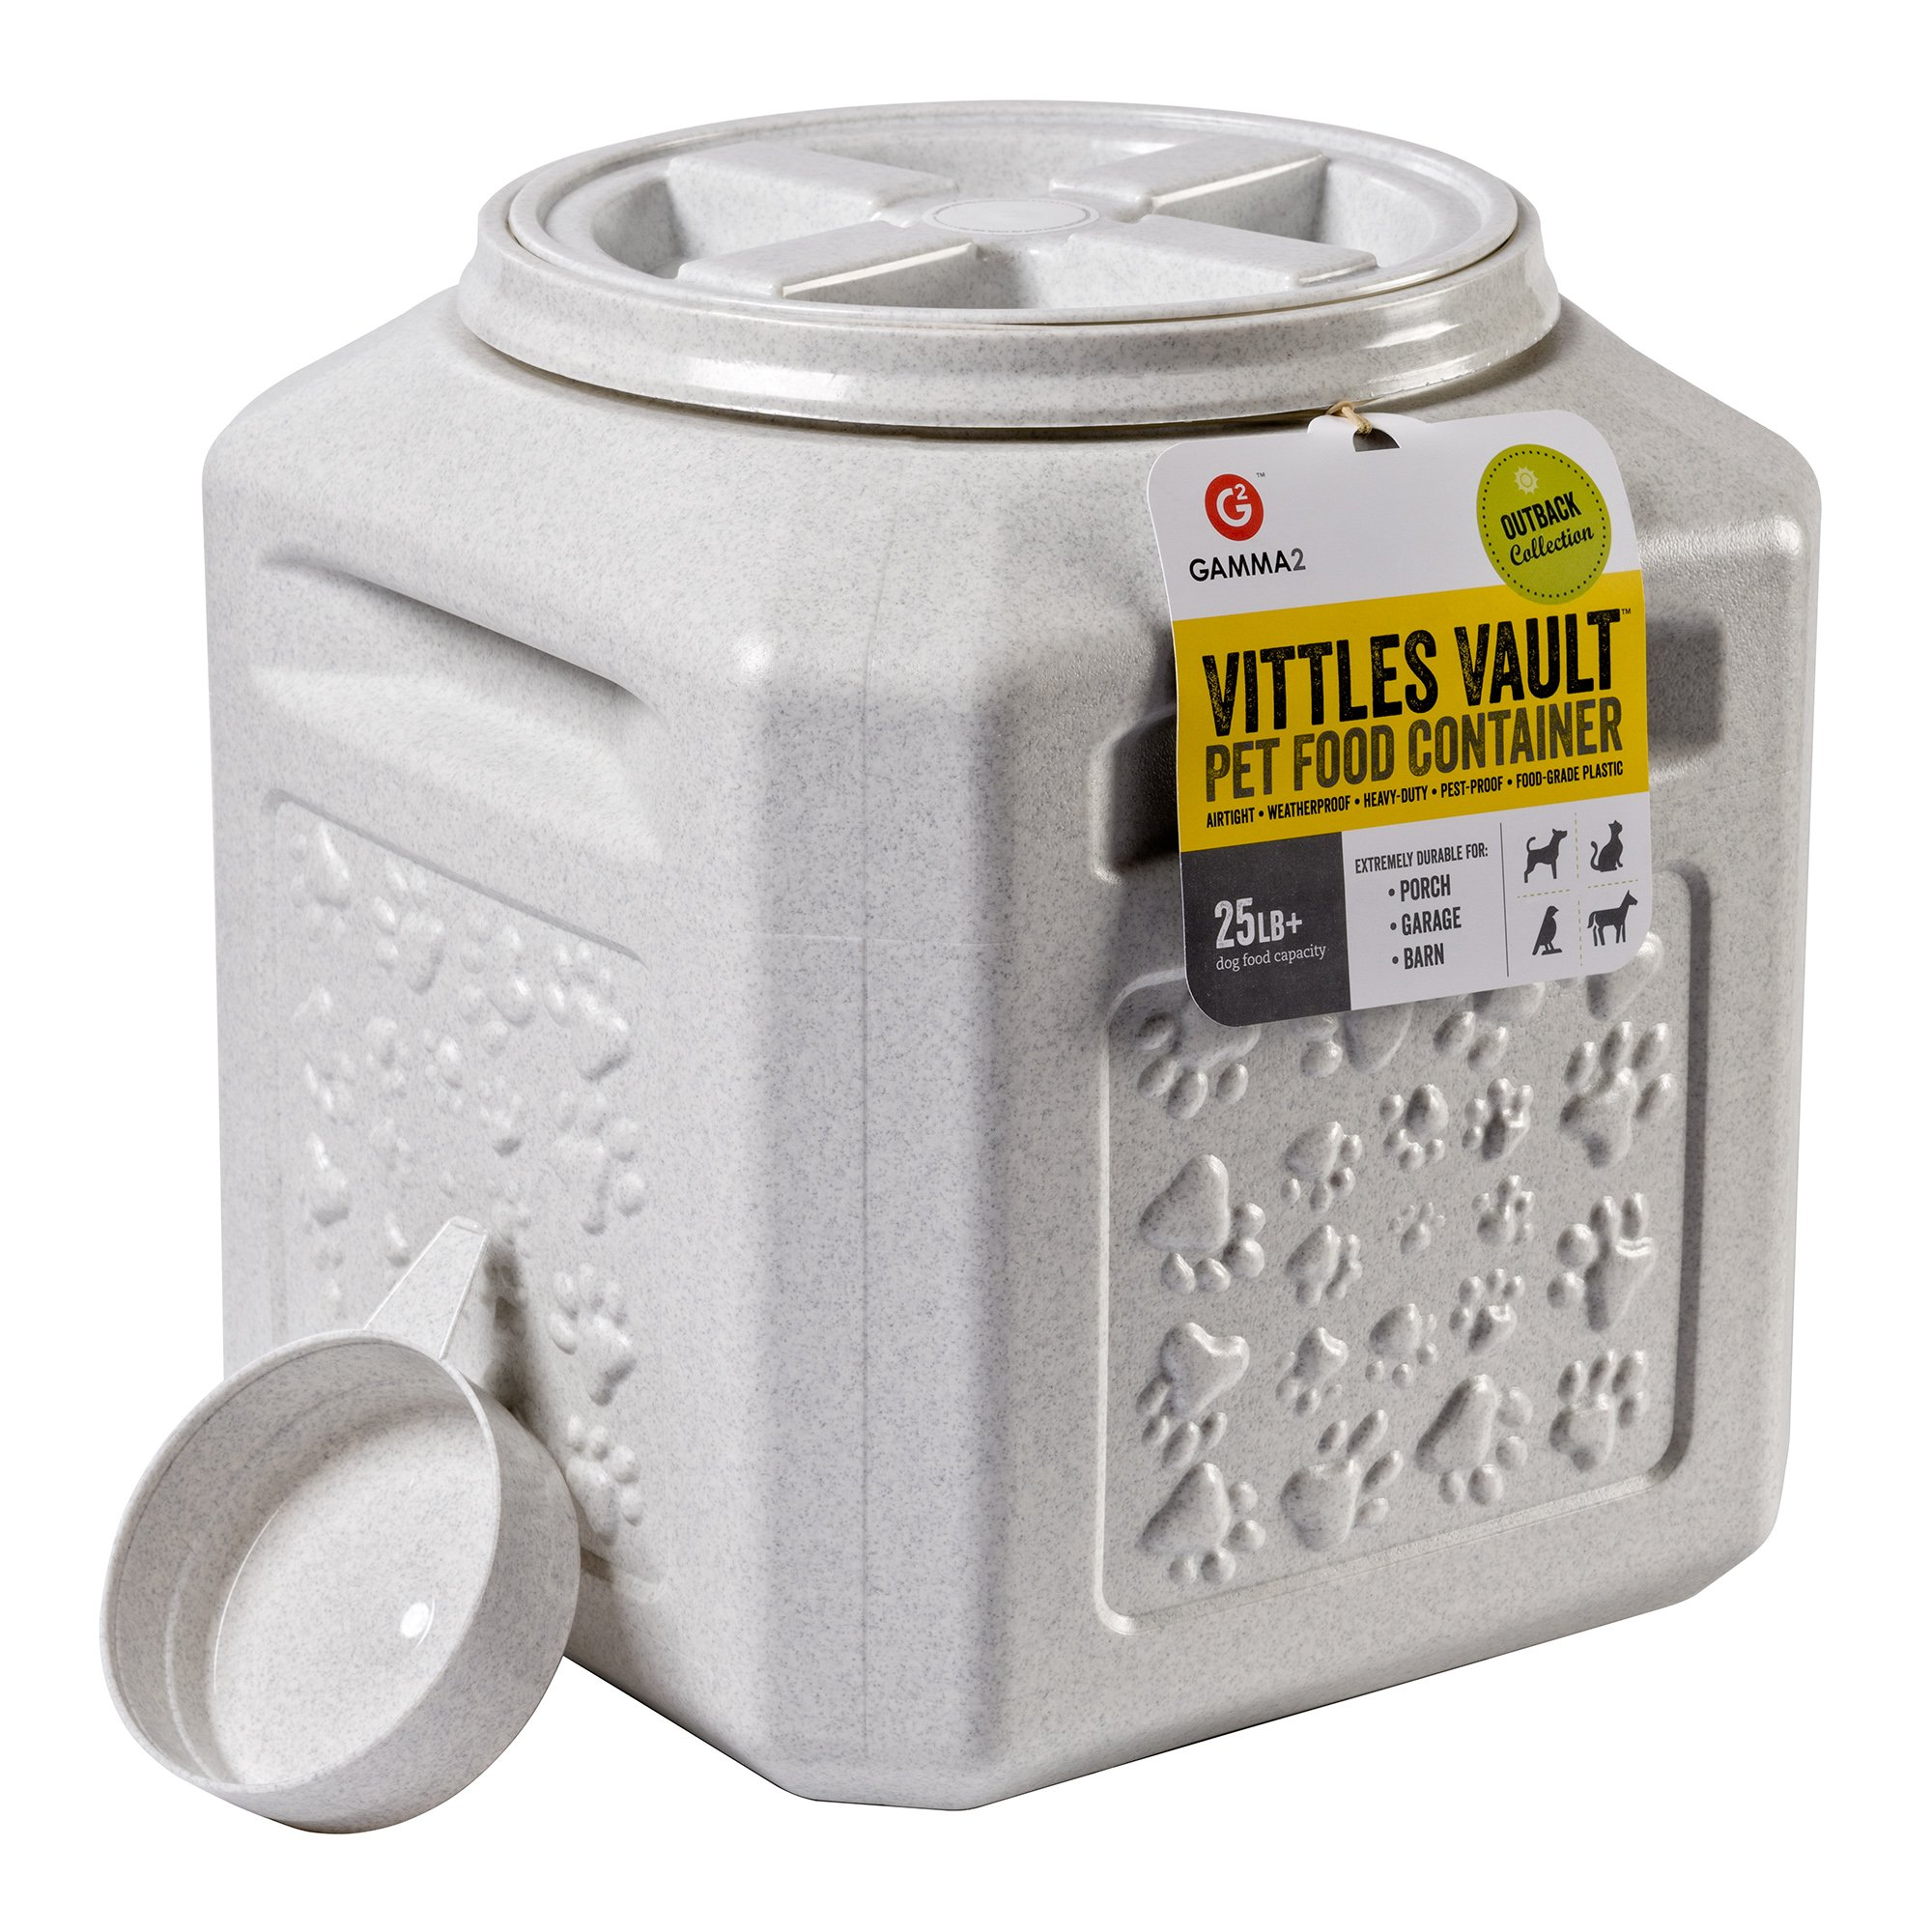 Vittles Vault Outback 25 lb Airtight Pet Food Storage Container by Gamma2